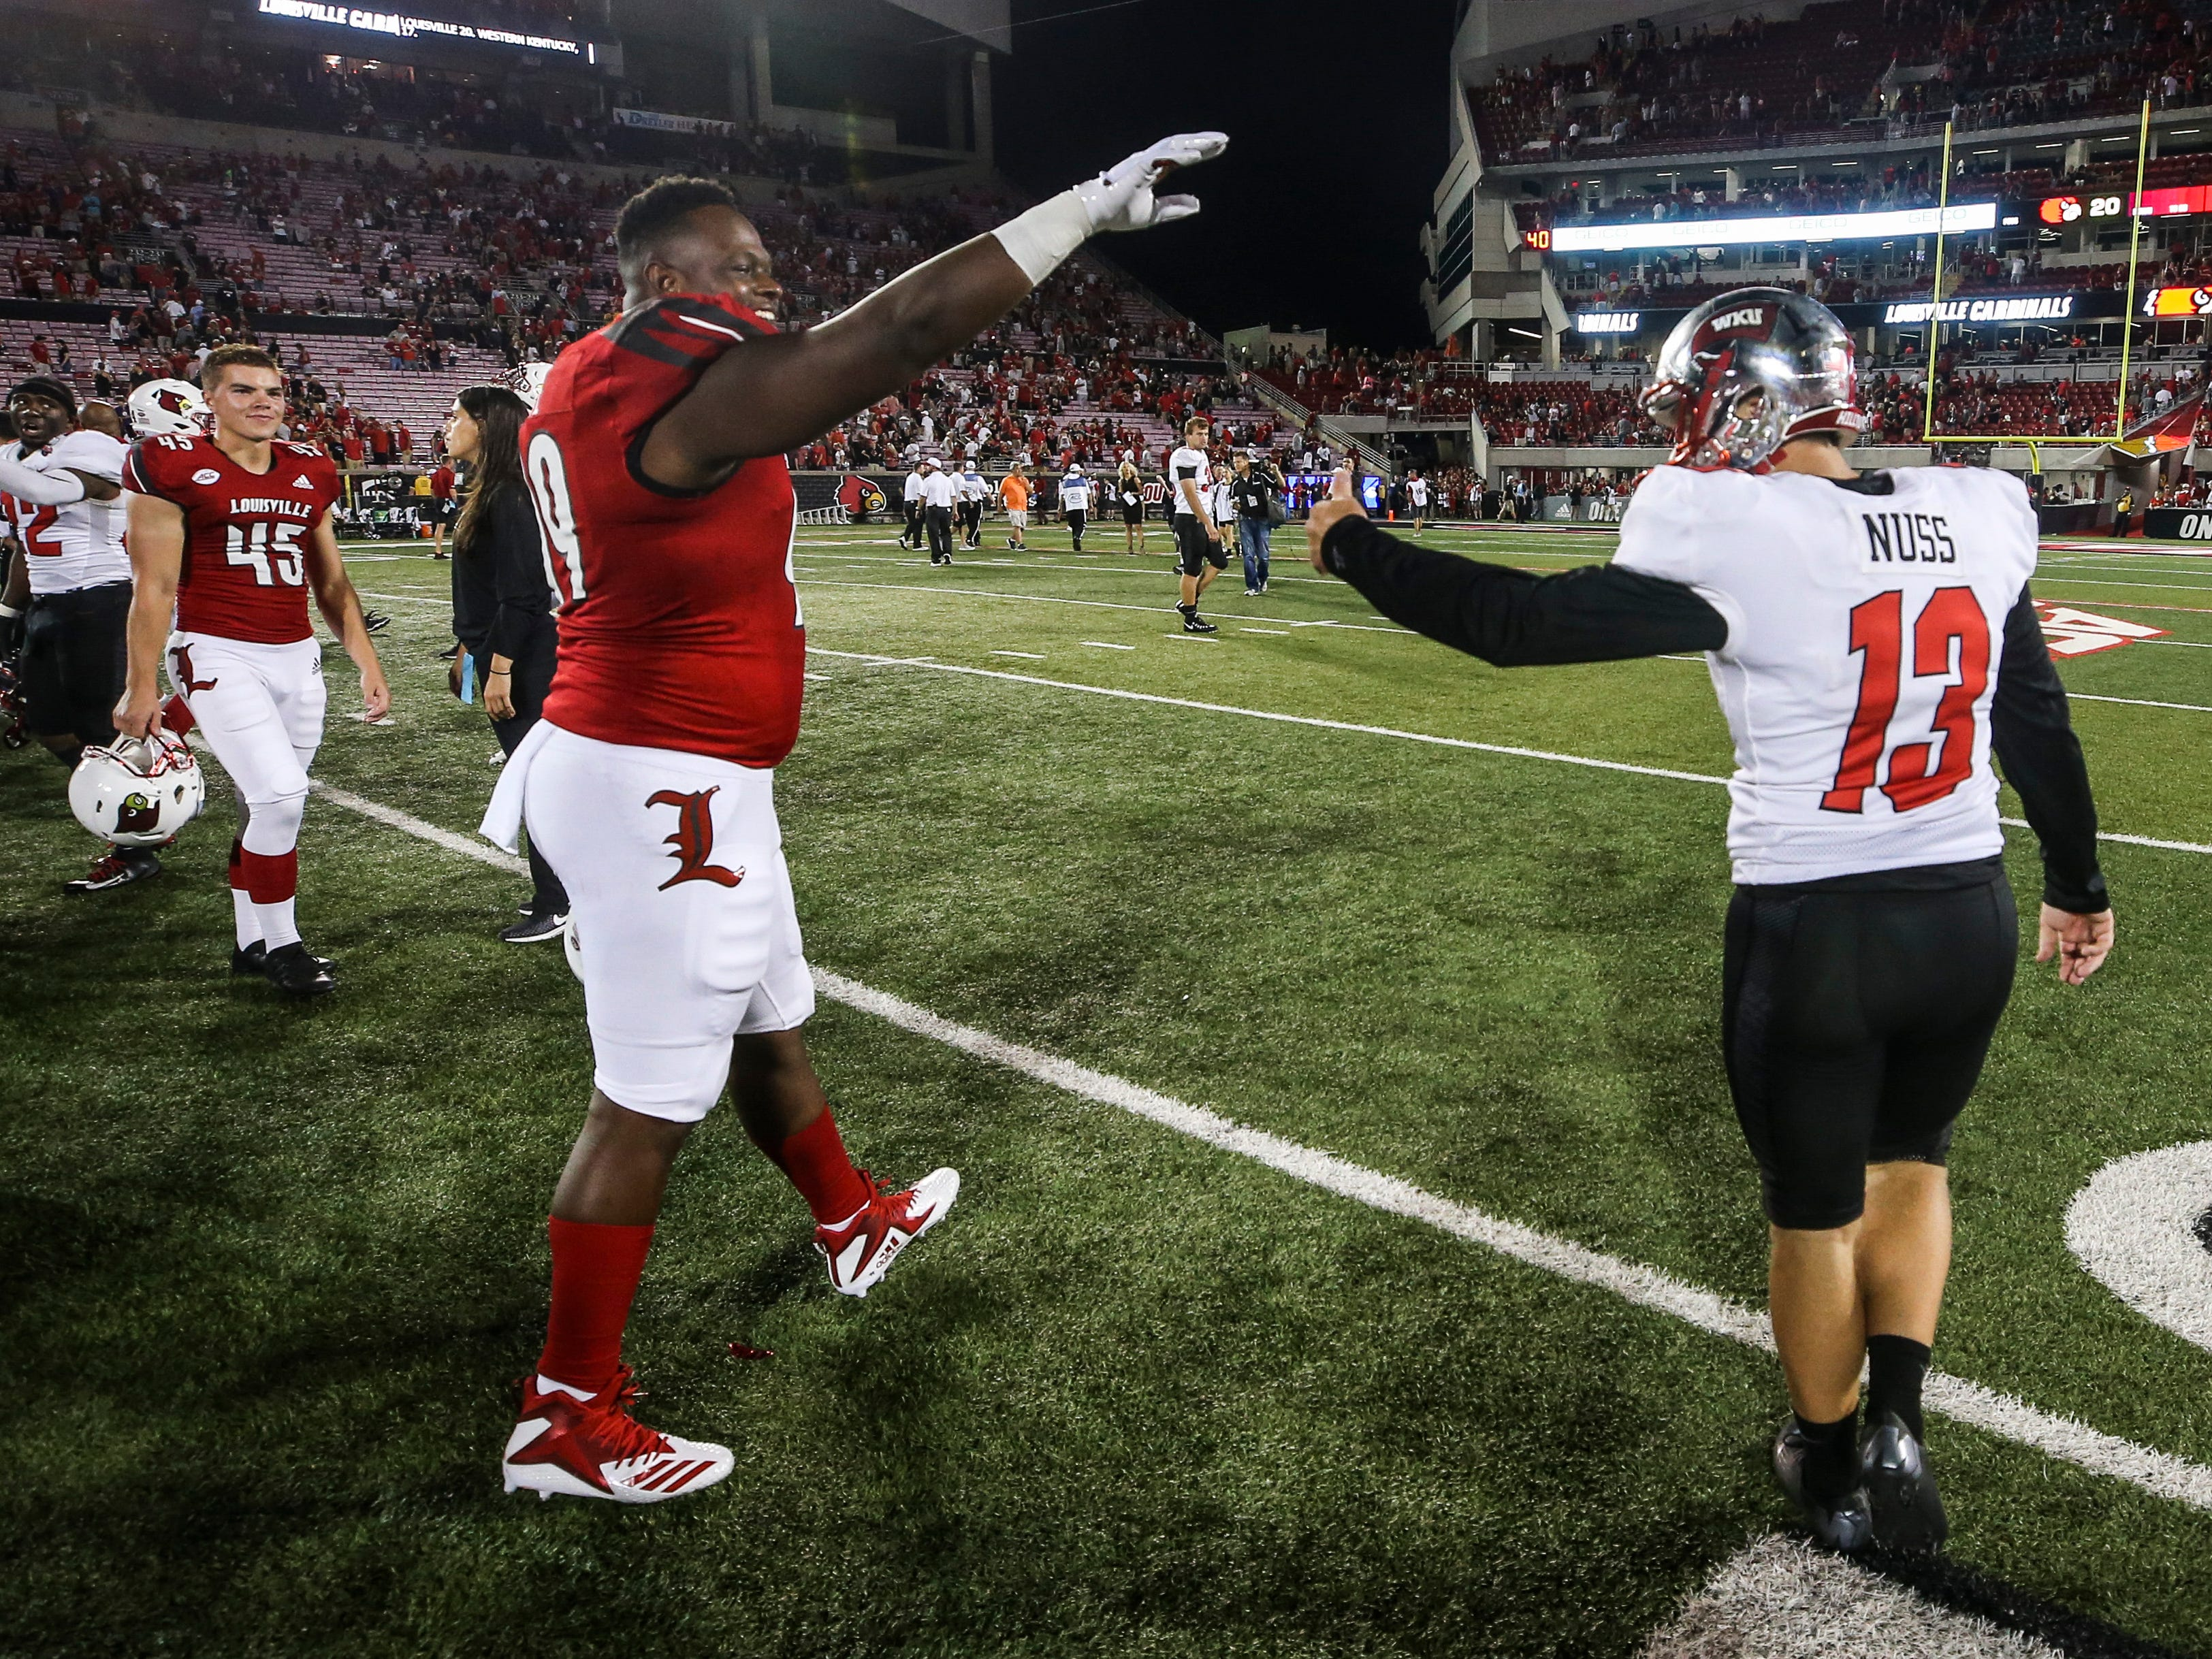 Louisville's Allen Love says 'Goodbye' as he and Western Kentucky kicker Ryan Nuss exchange words after the Cardinals finally defeated the Hilltoppers 20-17 after Nuss's last field goal attempt missed Saturday, Sept. 15, 2018.